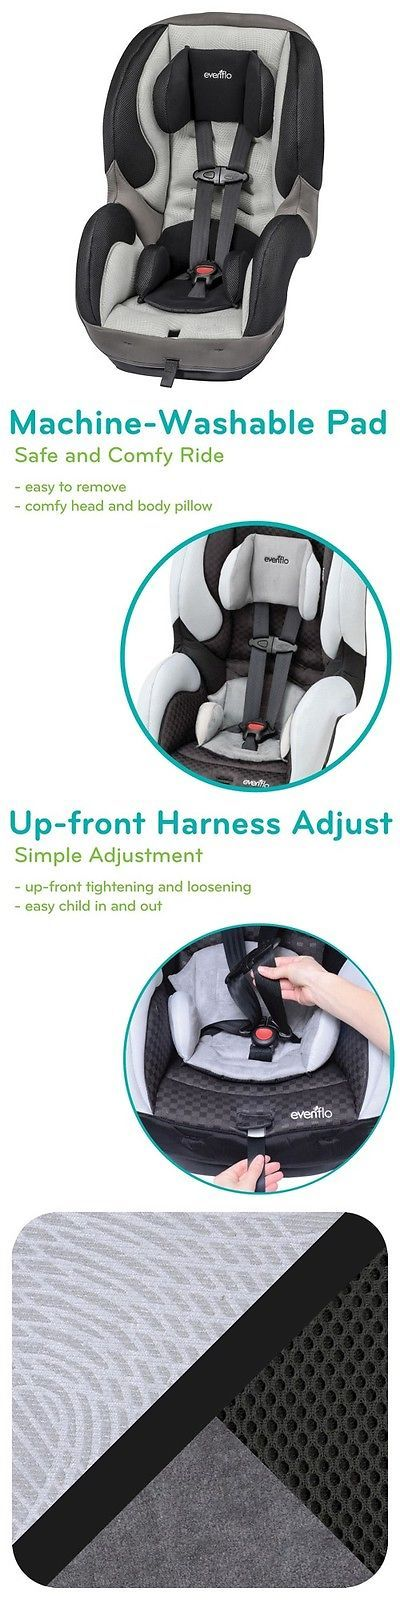 Other Car Safety Seats 2987 Evenflo Sureride Dlx 65 Convertible Carseat BUY IT NOW ONLY 8999 On EBay